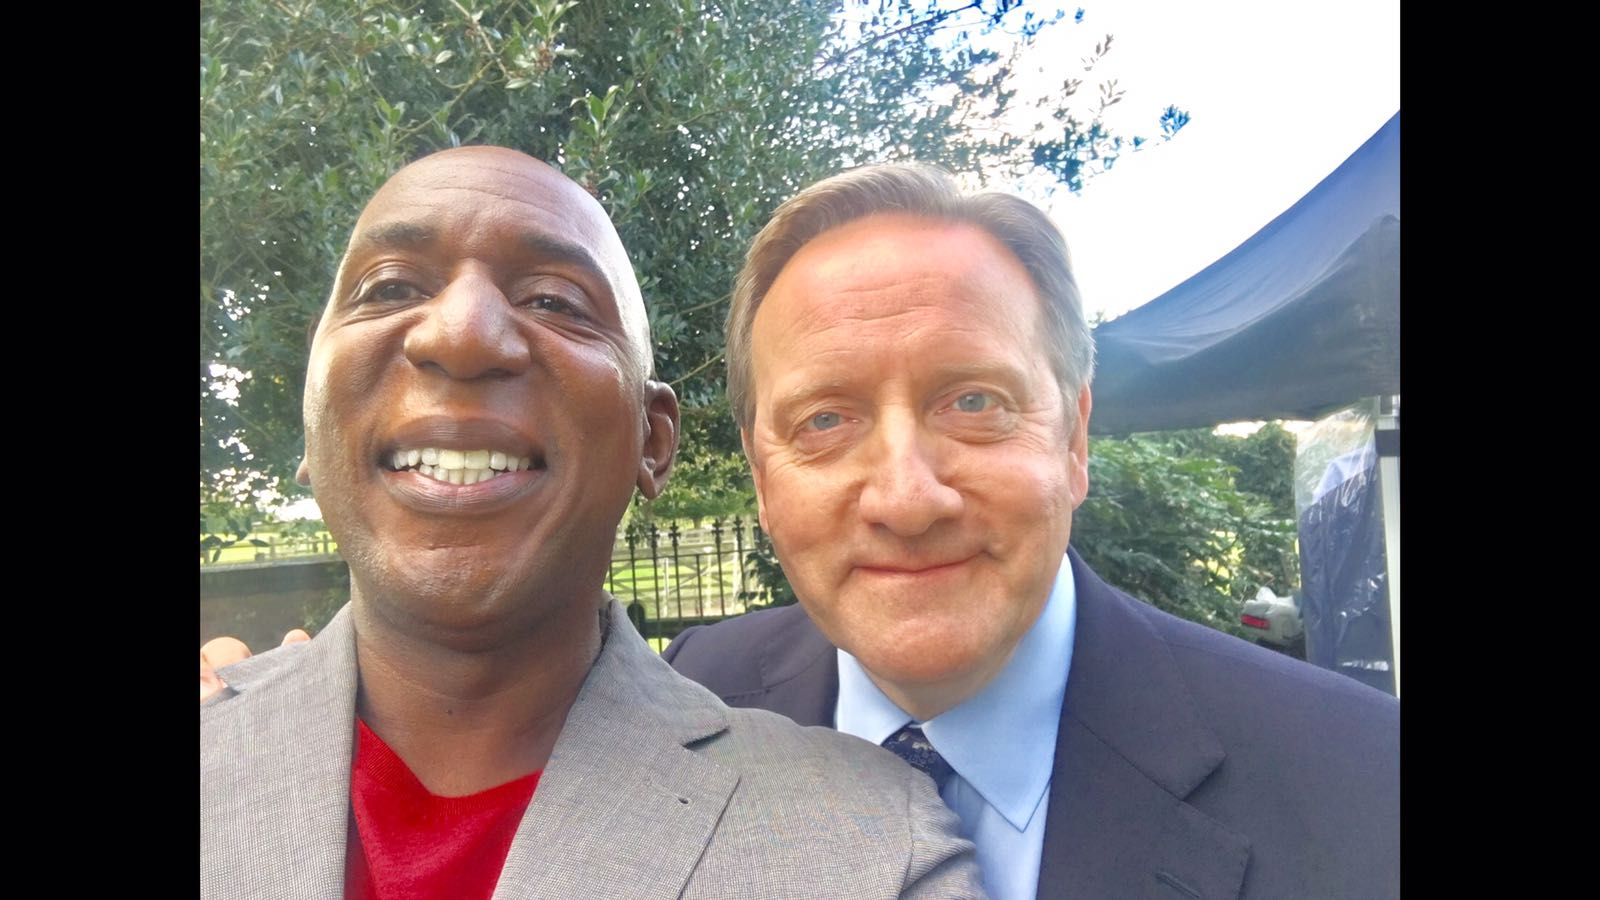 Colin filming Midsomer Murders with Neil Dudgeon.